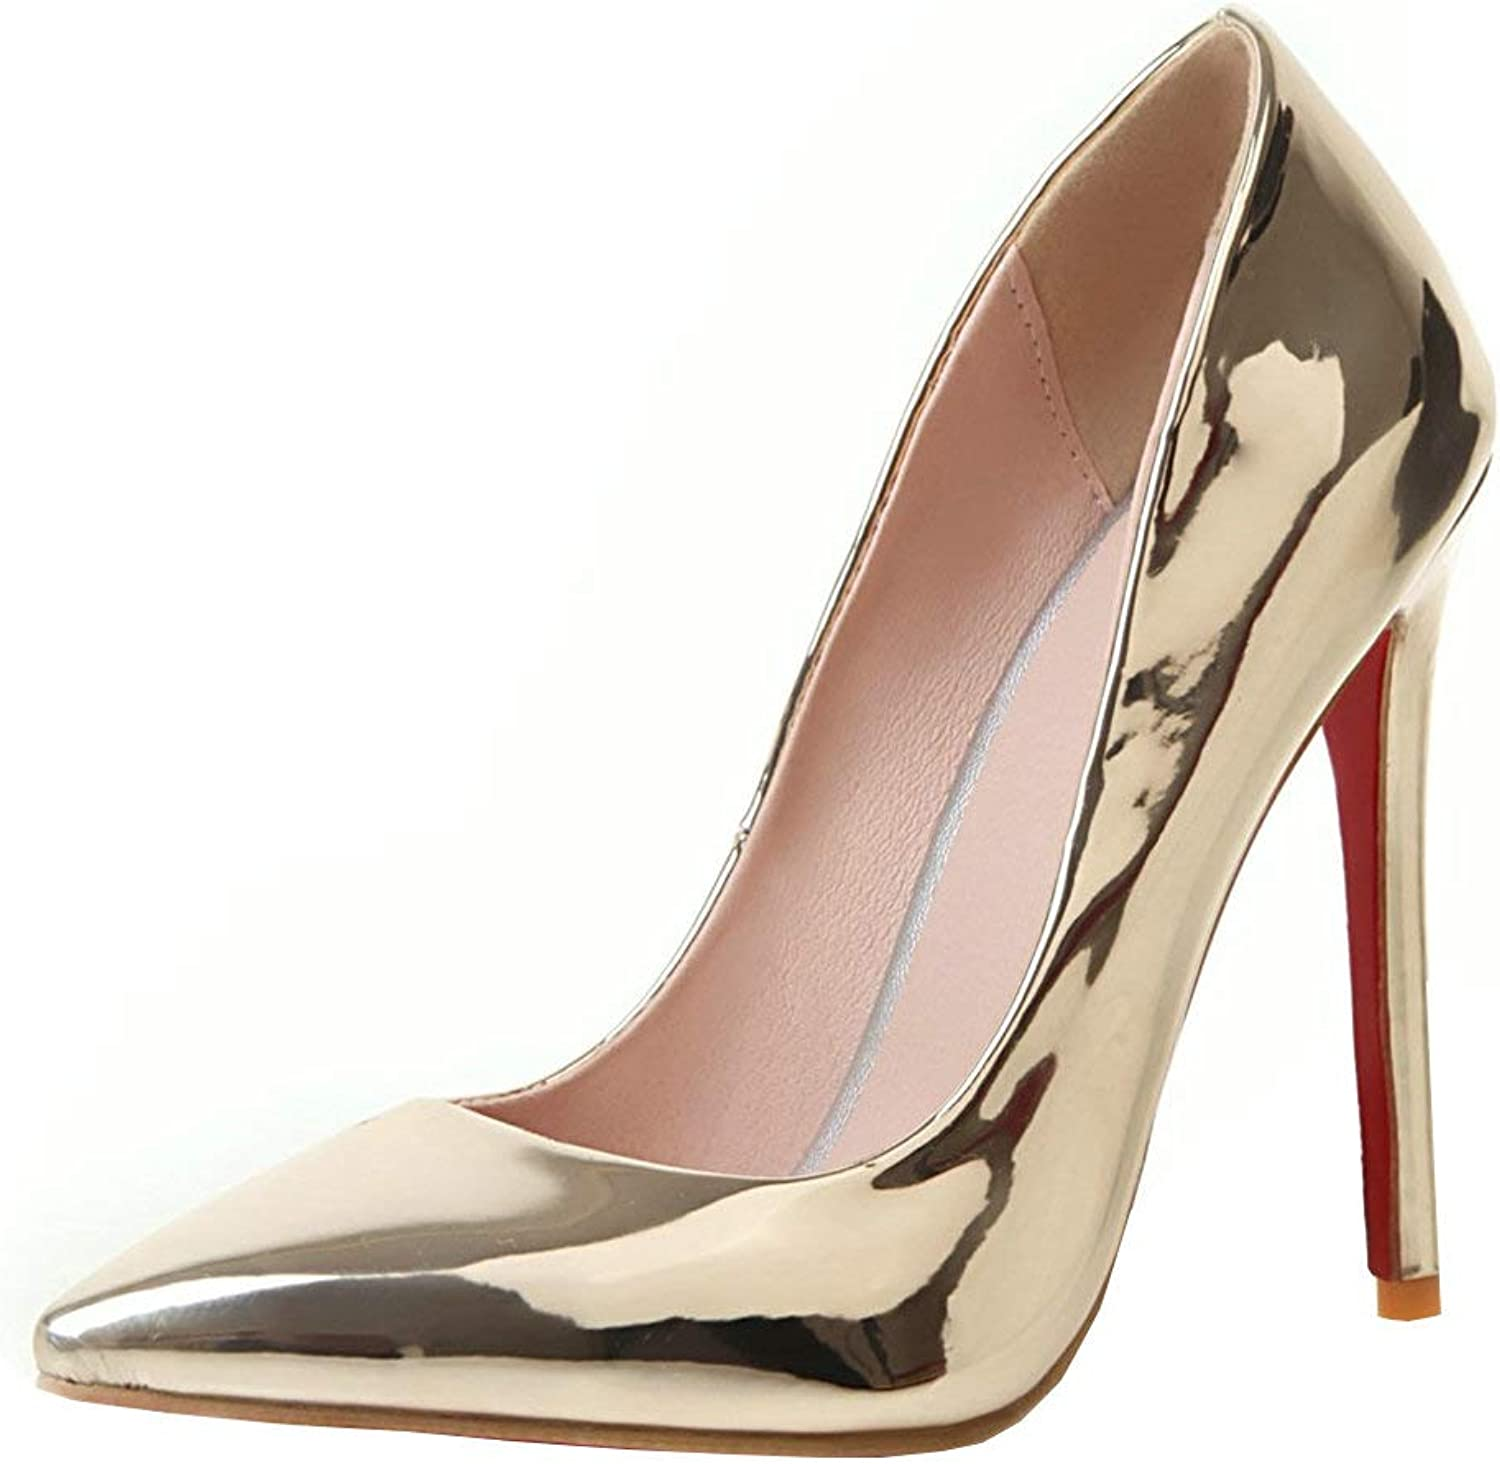 KIKIVA Women Pointed Toe Stiletto High Heel Pumps Patent Leather Party Court shoes